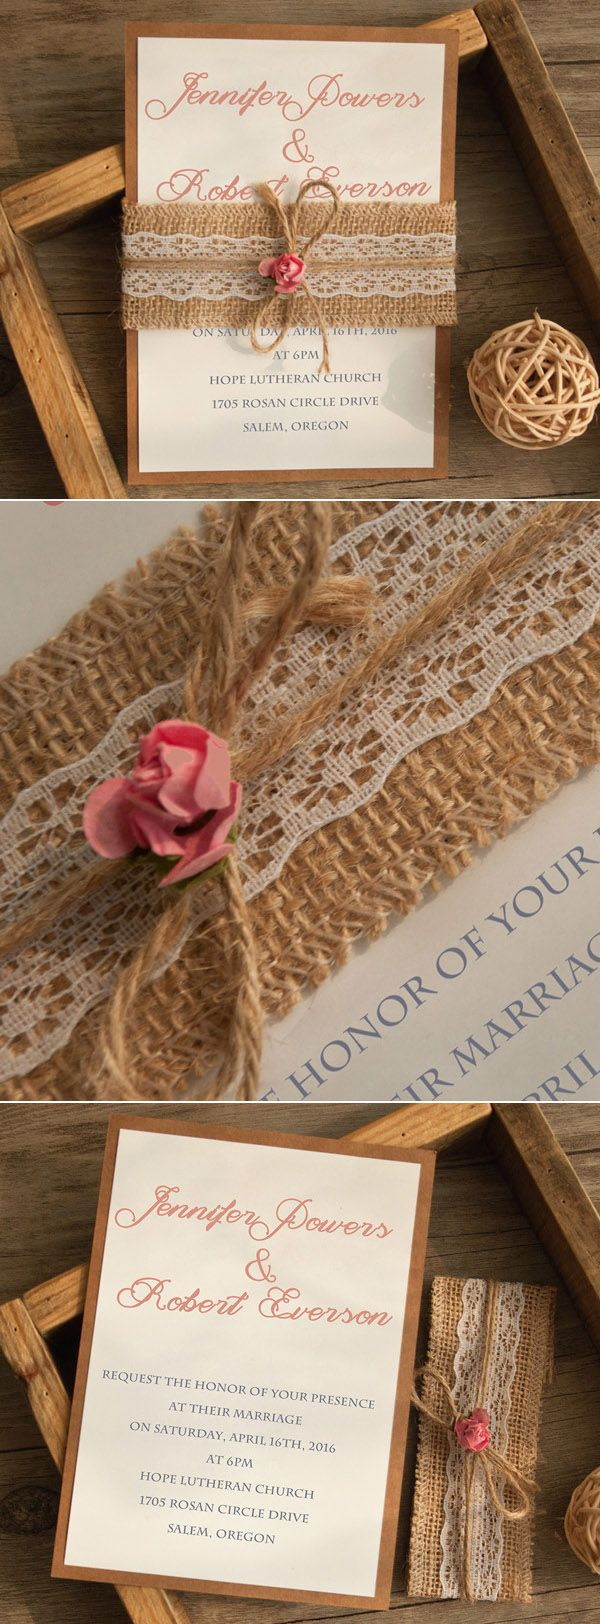 Rustic country burlap string lights lace wedding card - Best 25 Rustic Burlap Invitations Ideas On Pinterest Burlap Invitations Save The Date Ideas Diy And Diy Invitations